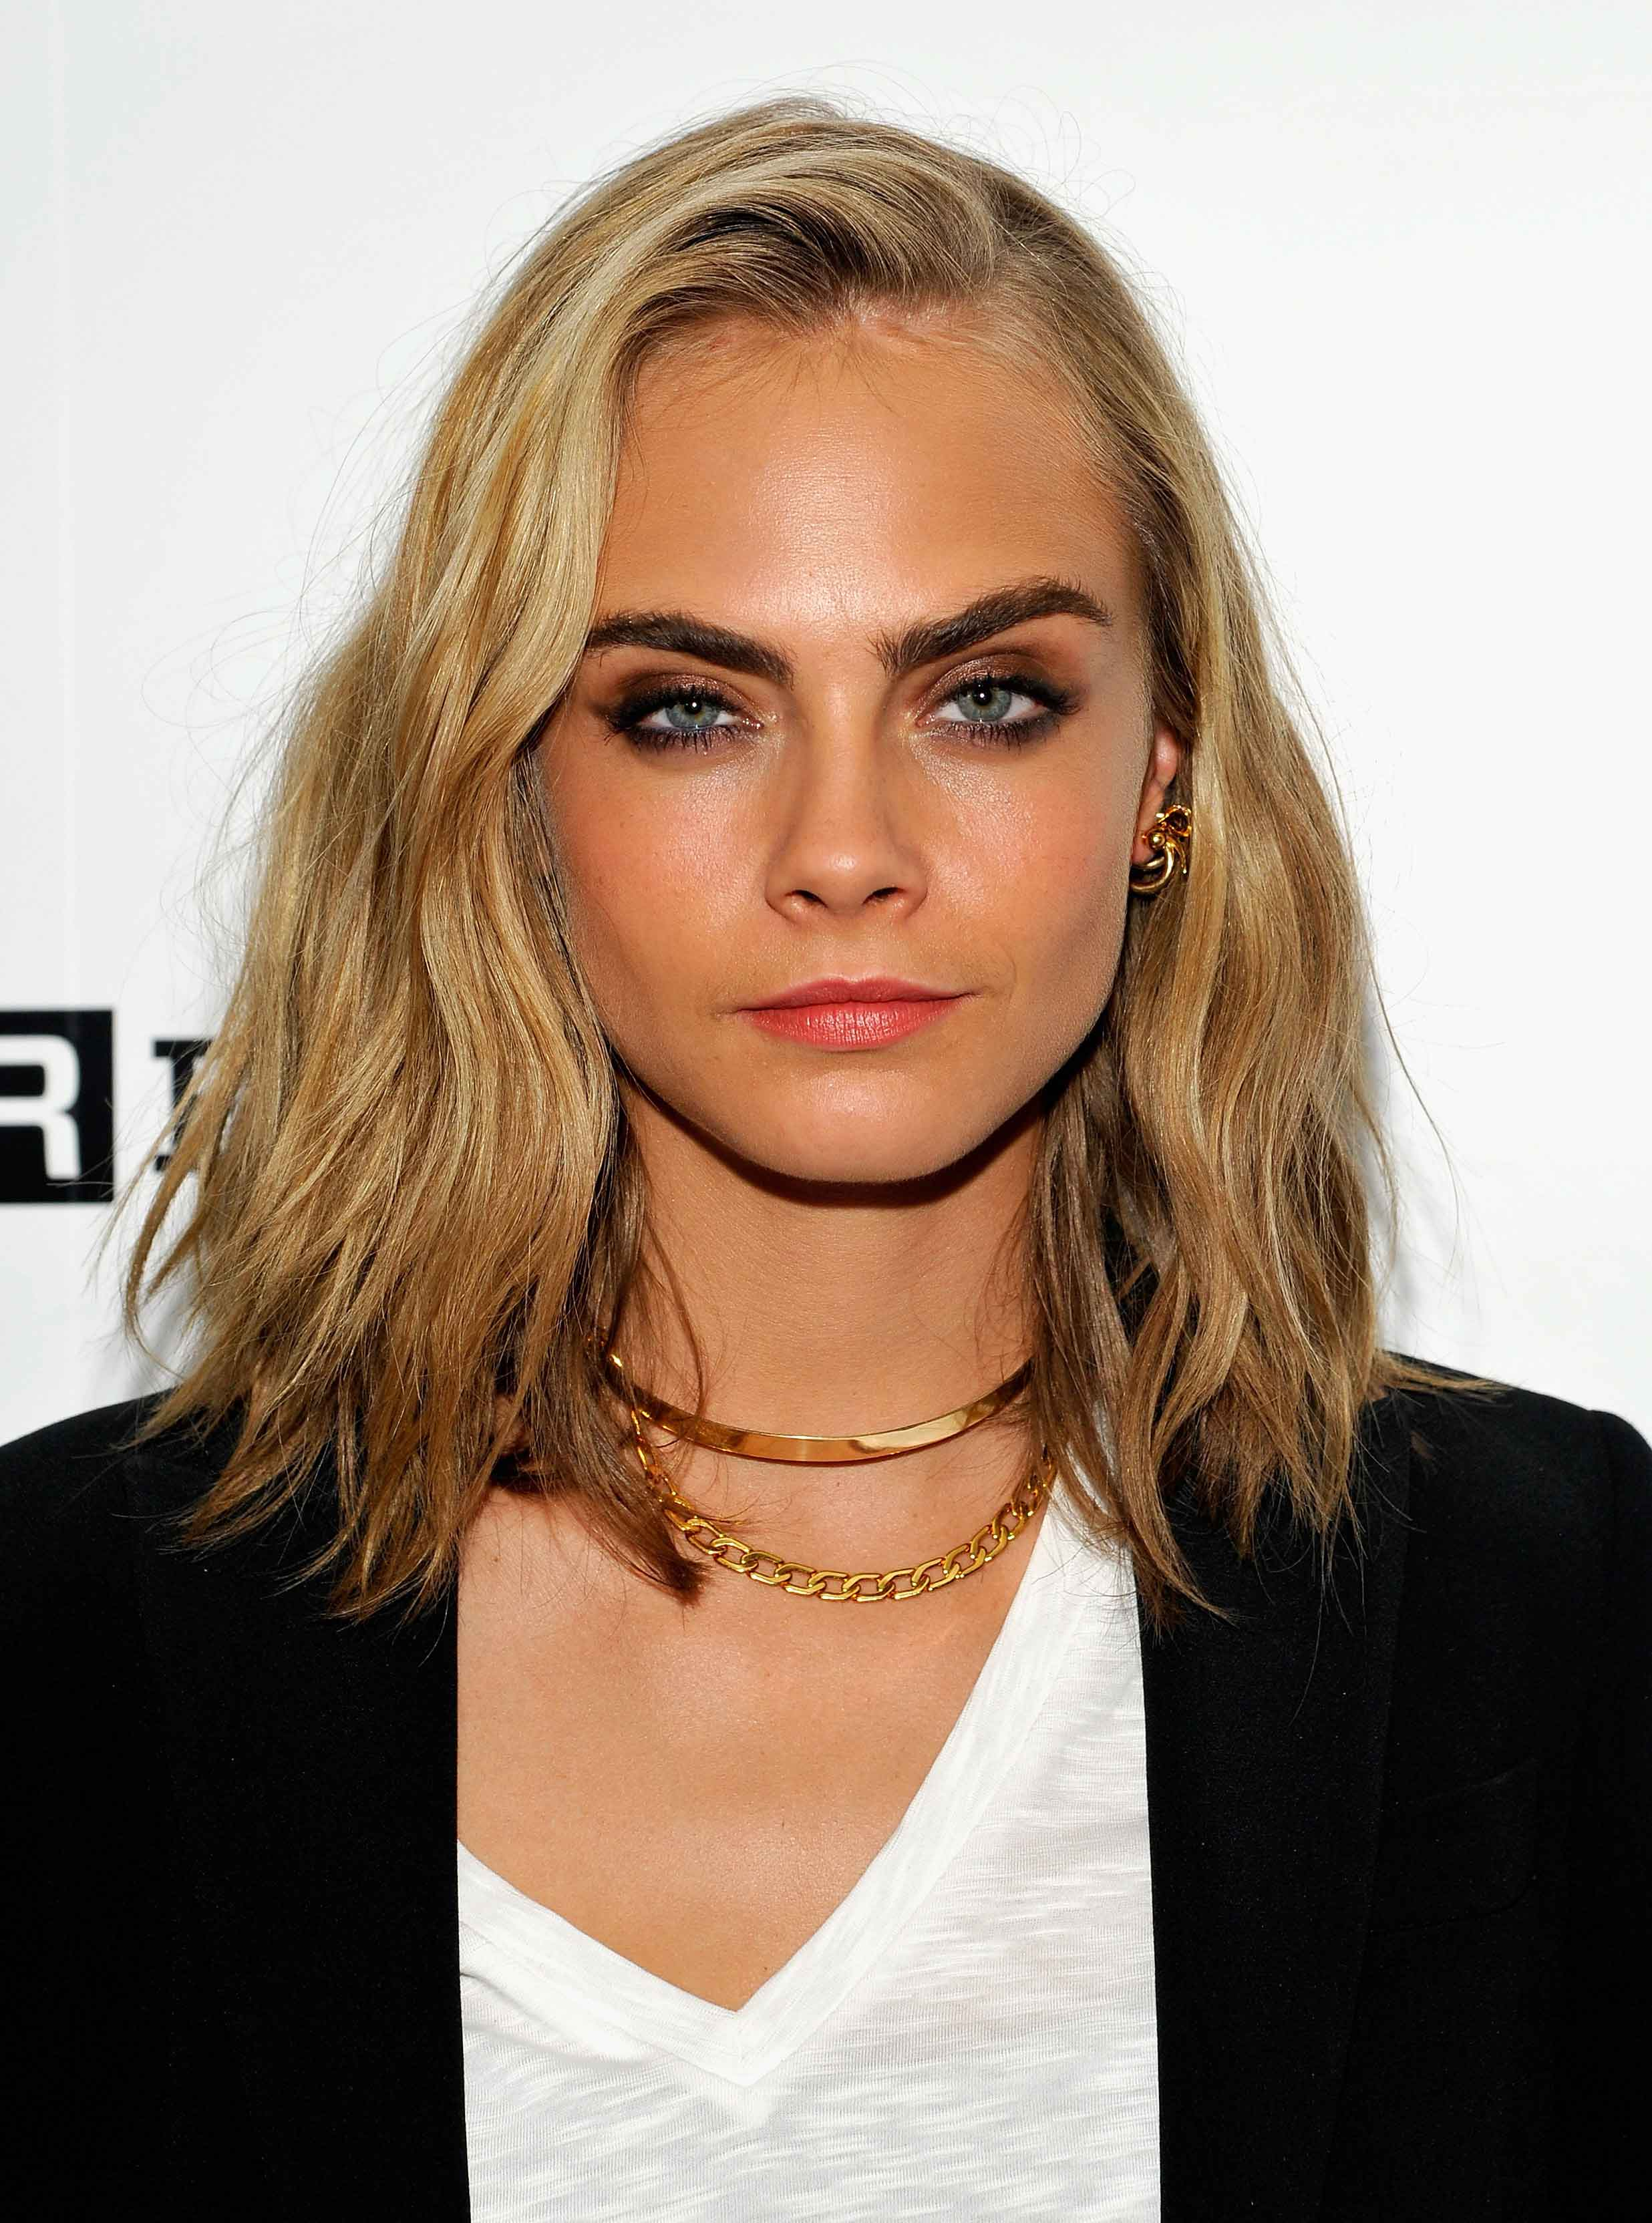 <p>After uploading a cryptic Instagram post hinting at a new look, Cara Delevingne has finally debuted a fresh cut at Comic Con. Ditching her trademark dark blonde lengths, Delevingne opted for a laid-back wavy bob in a significantly lighter shade than usual. </p> <p>She's not the only one who's decided to mix it up either; click through to find your perfect A-list hair inspiration, from Mila Kunis' short 'do to Emma Roberts' platinum mane.</p>